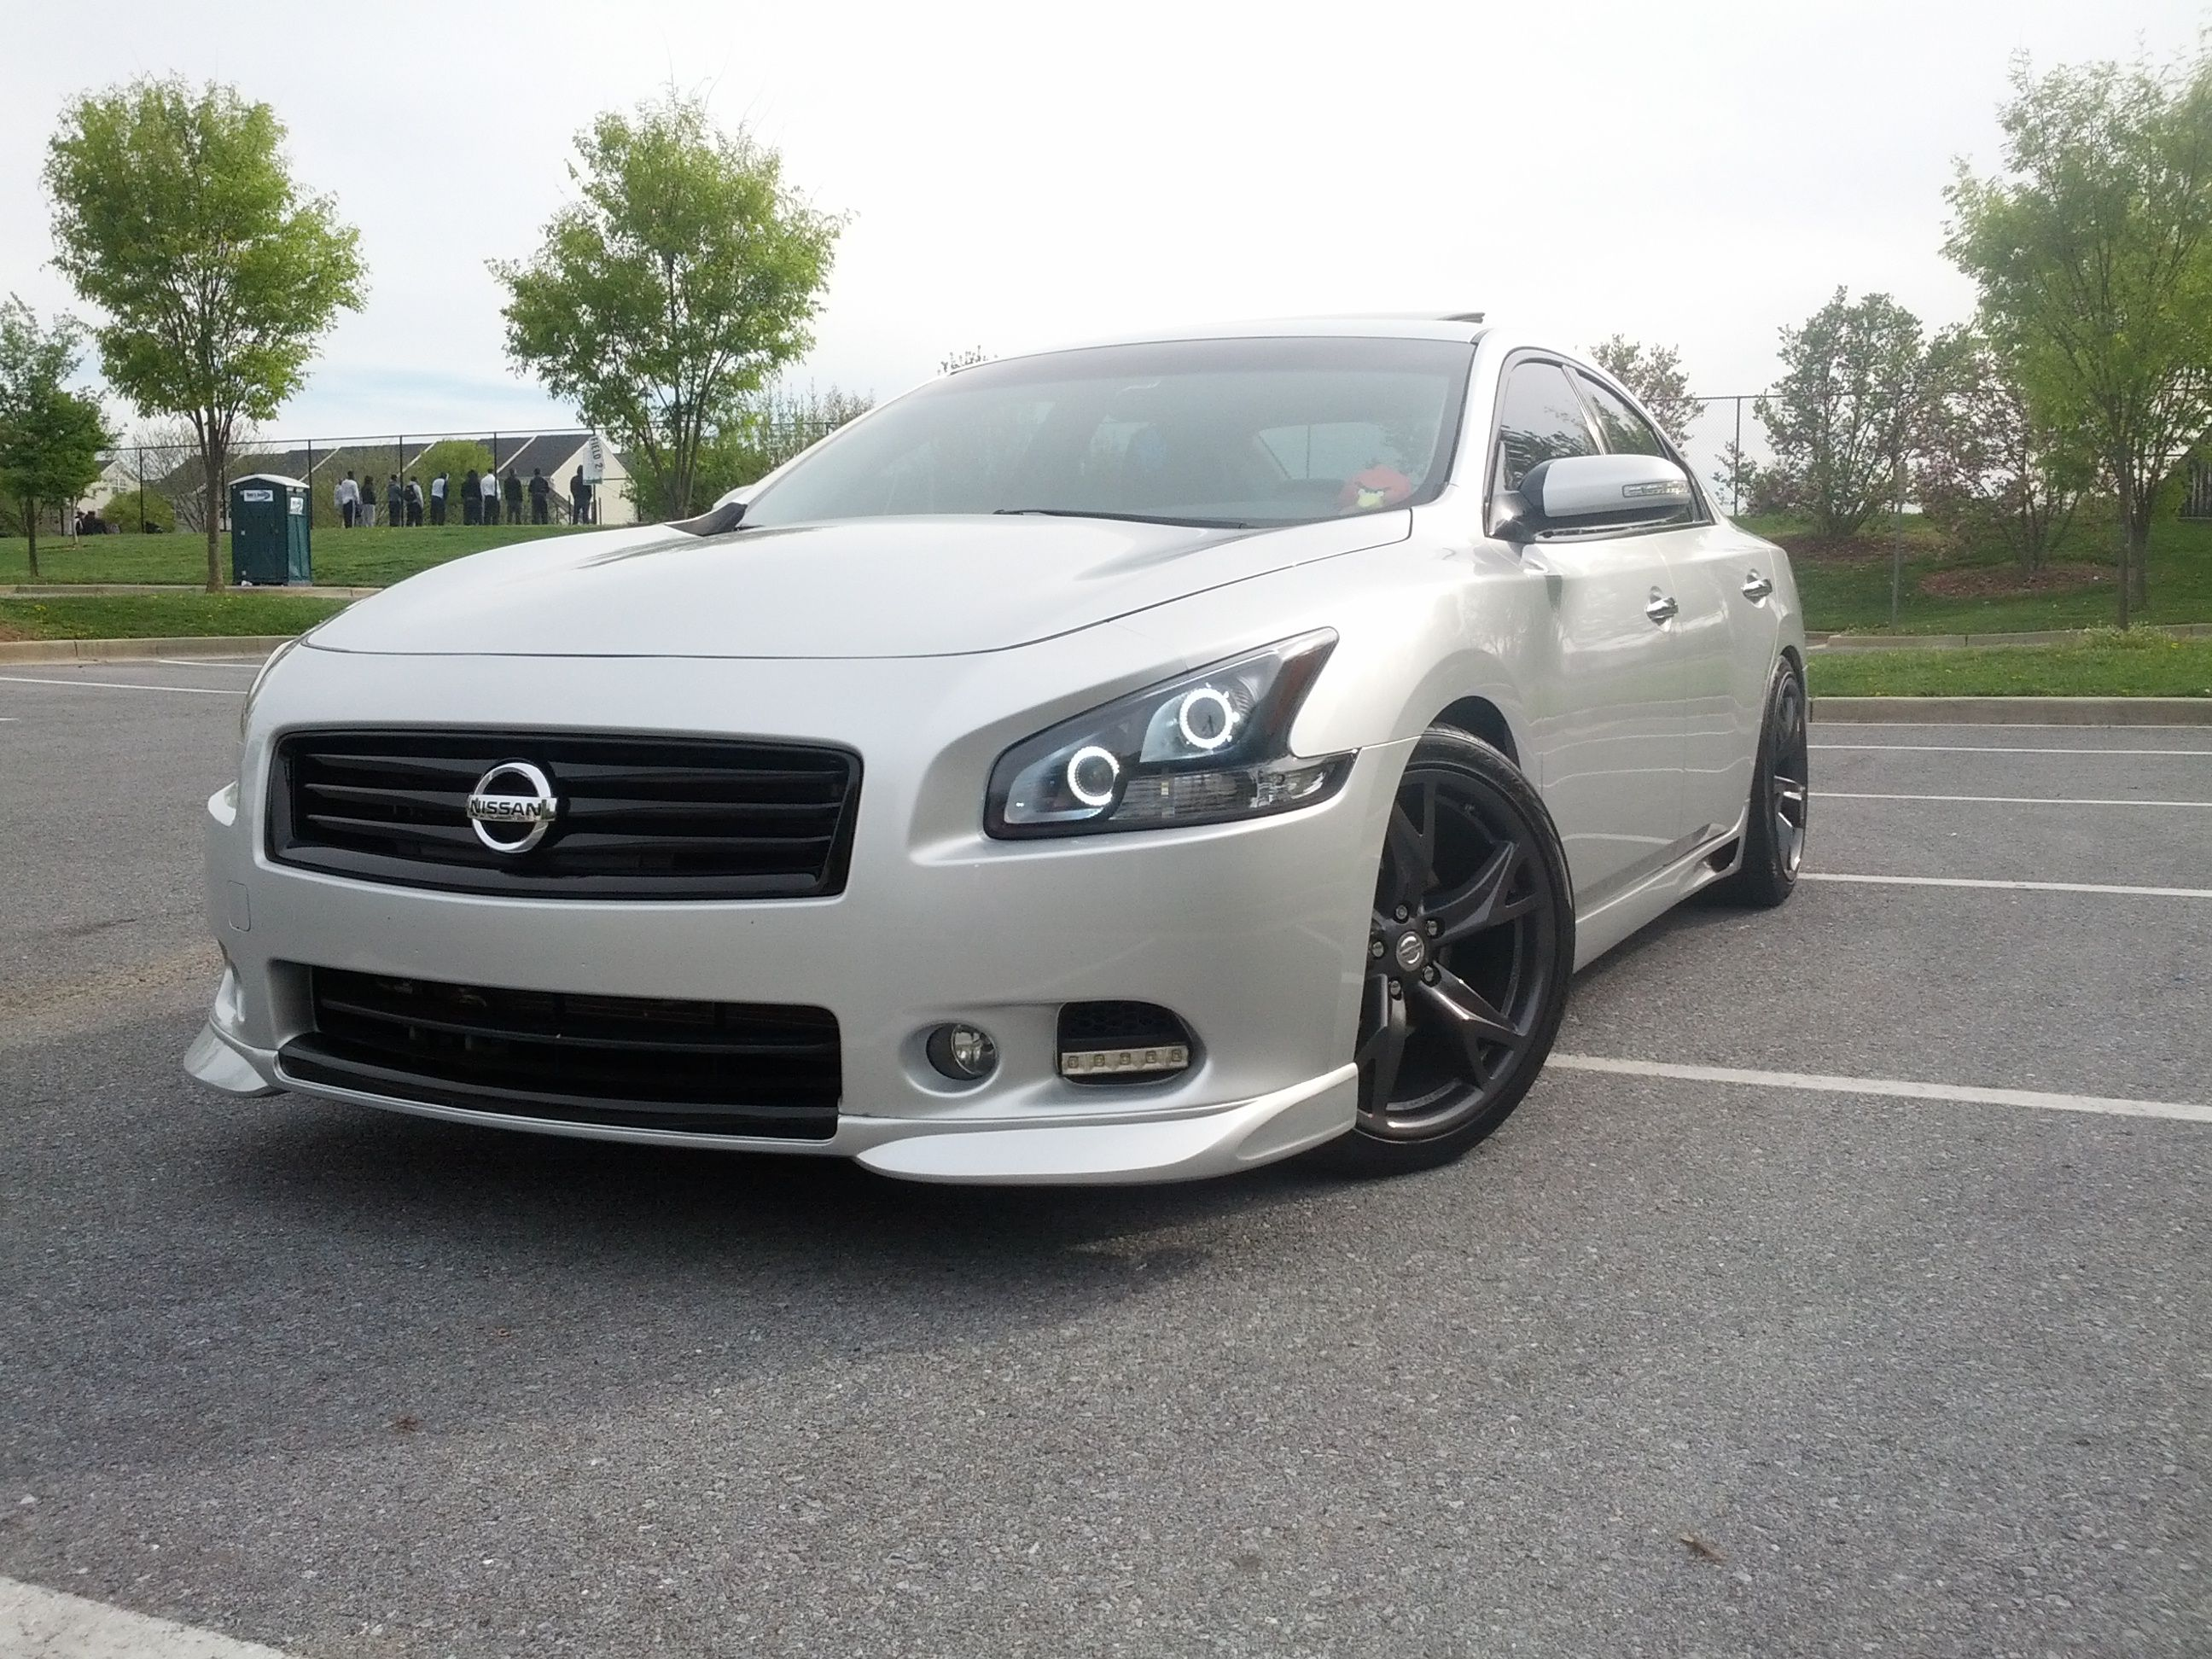 Nissan maxima maxima pinterest nissan maxima nissan and cars black upper lower grills vanachro Image collections